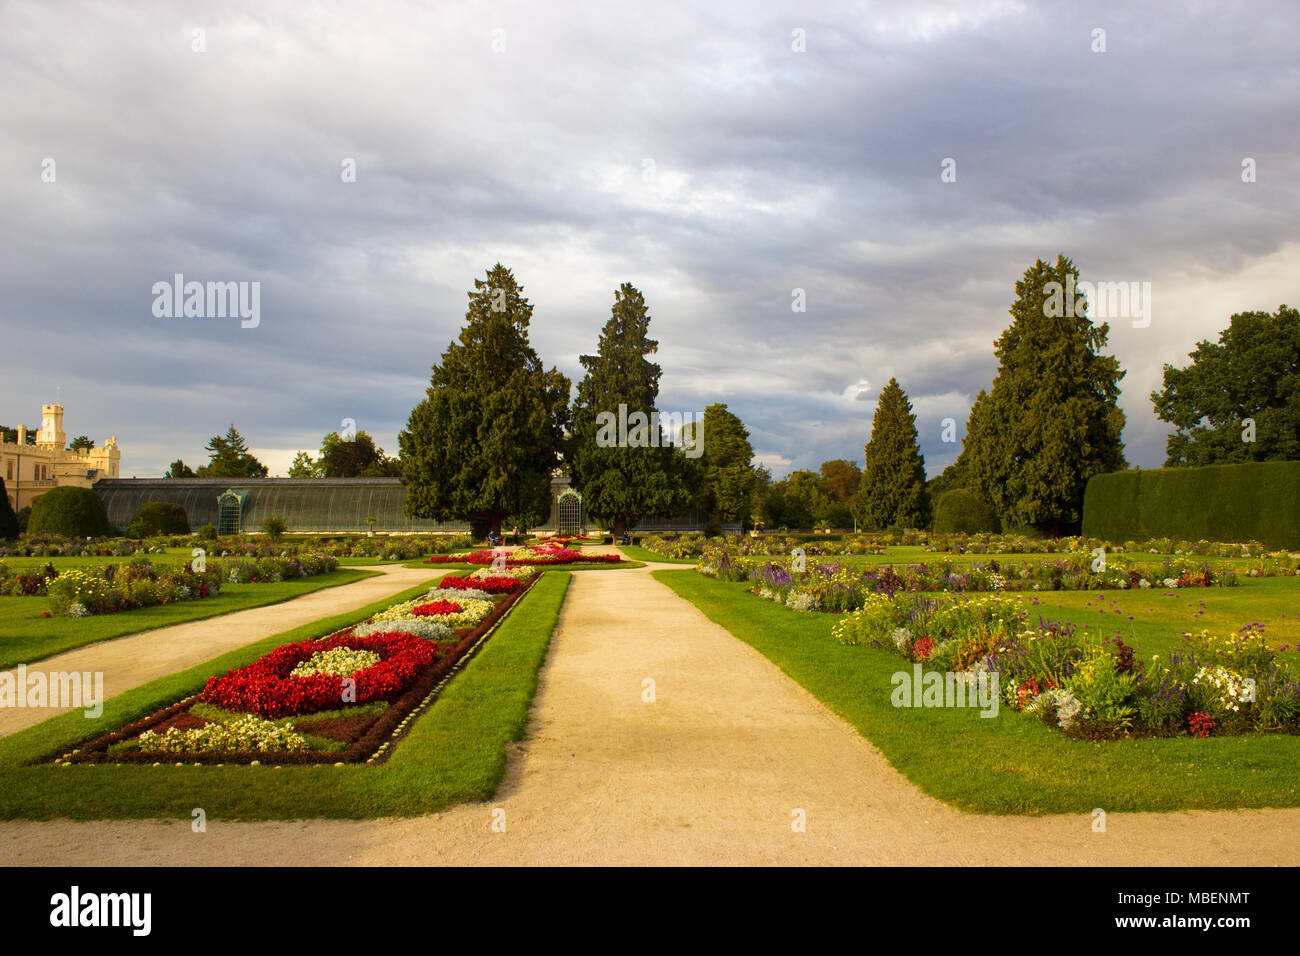 Chateau park Lednice with flowers and trees. On the left is Lednice castle. Stock Photo